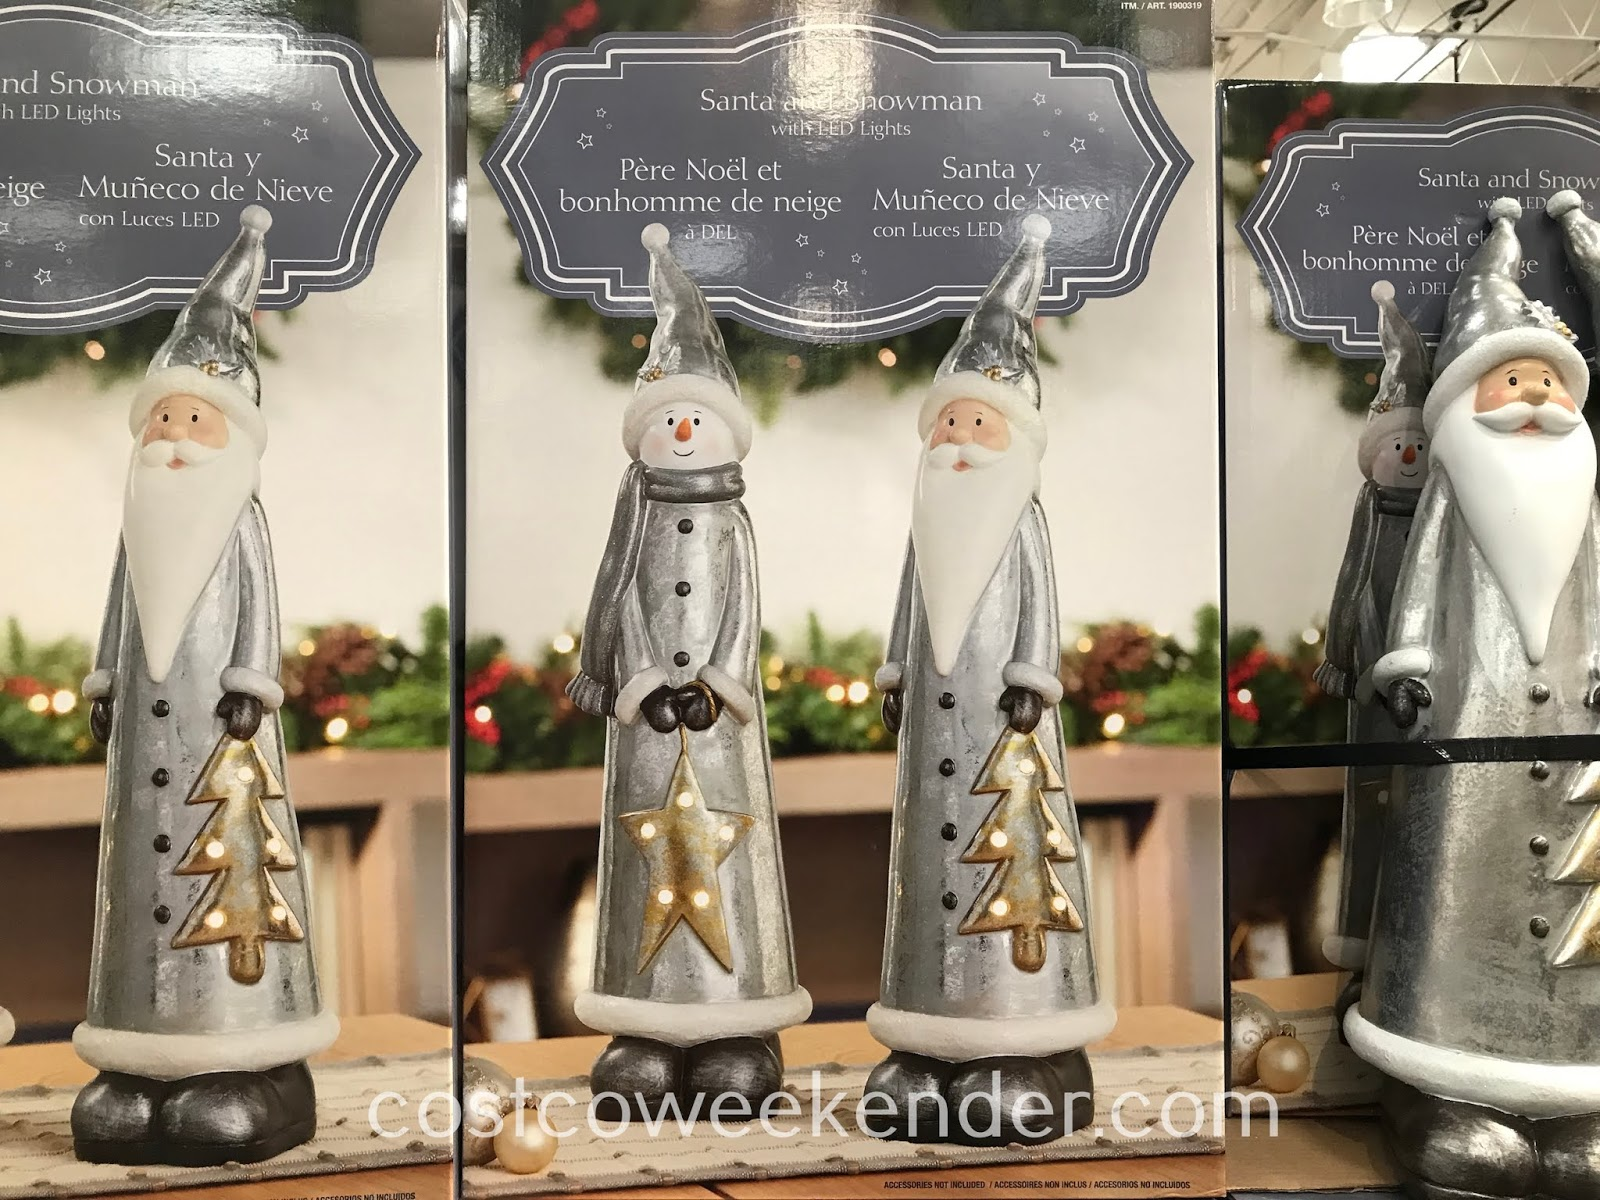 Decorate your home this Christmas with the Santa and Snowman with LED Lights